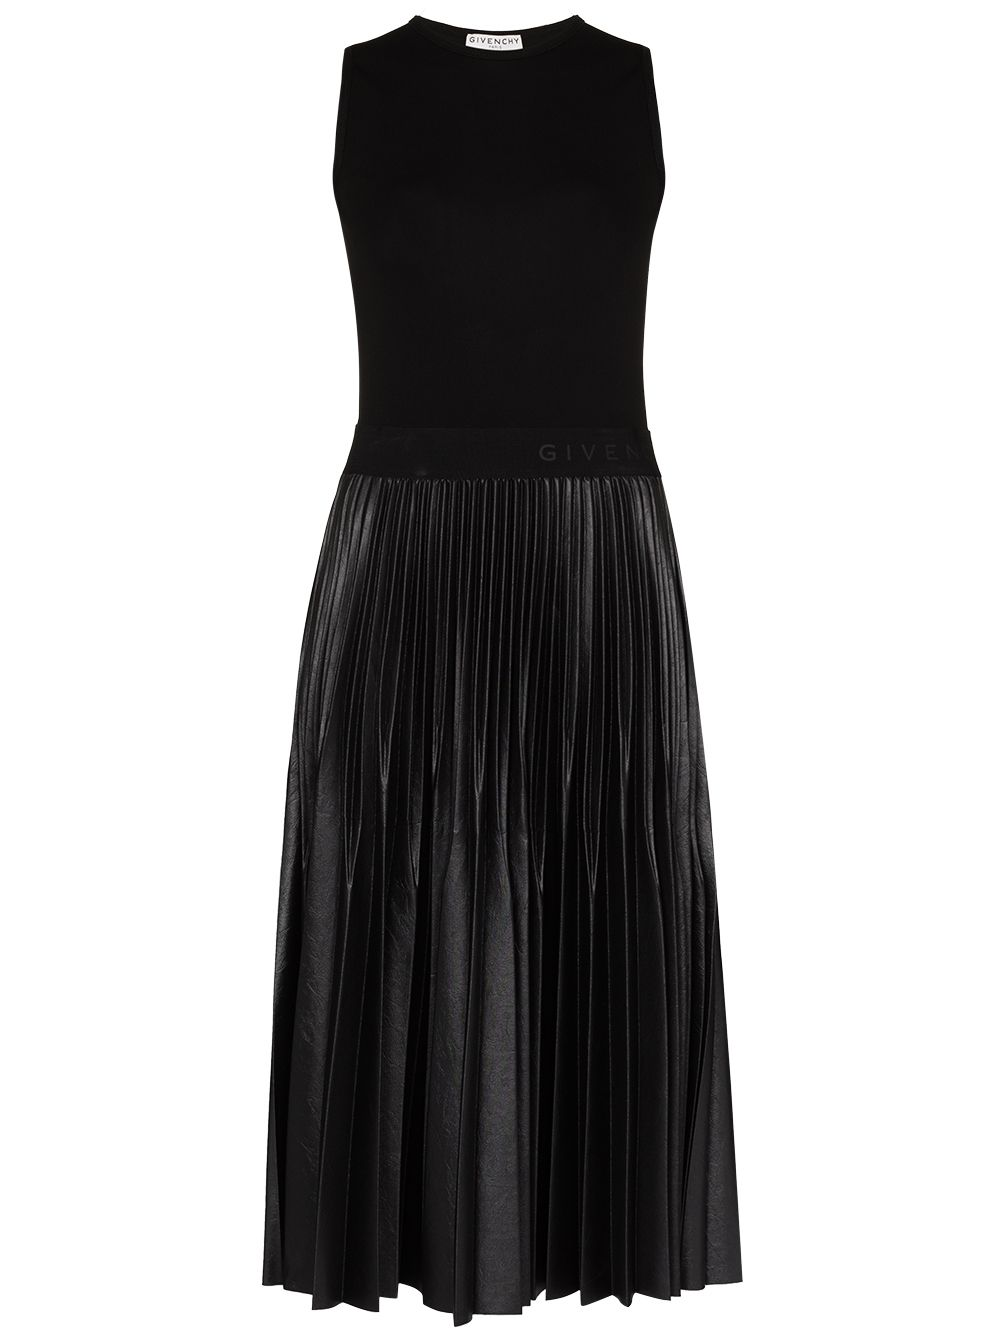 black cotton-blend pleated midi dress  GIVENCHY |  | BW20PM3Z26001